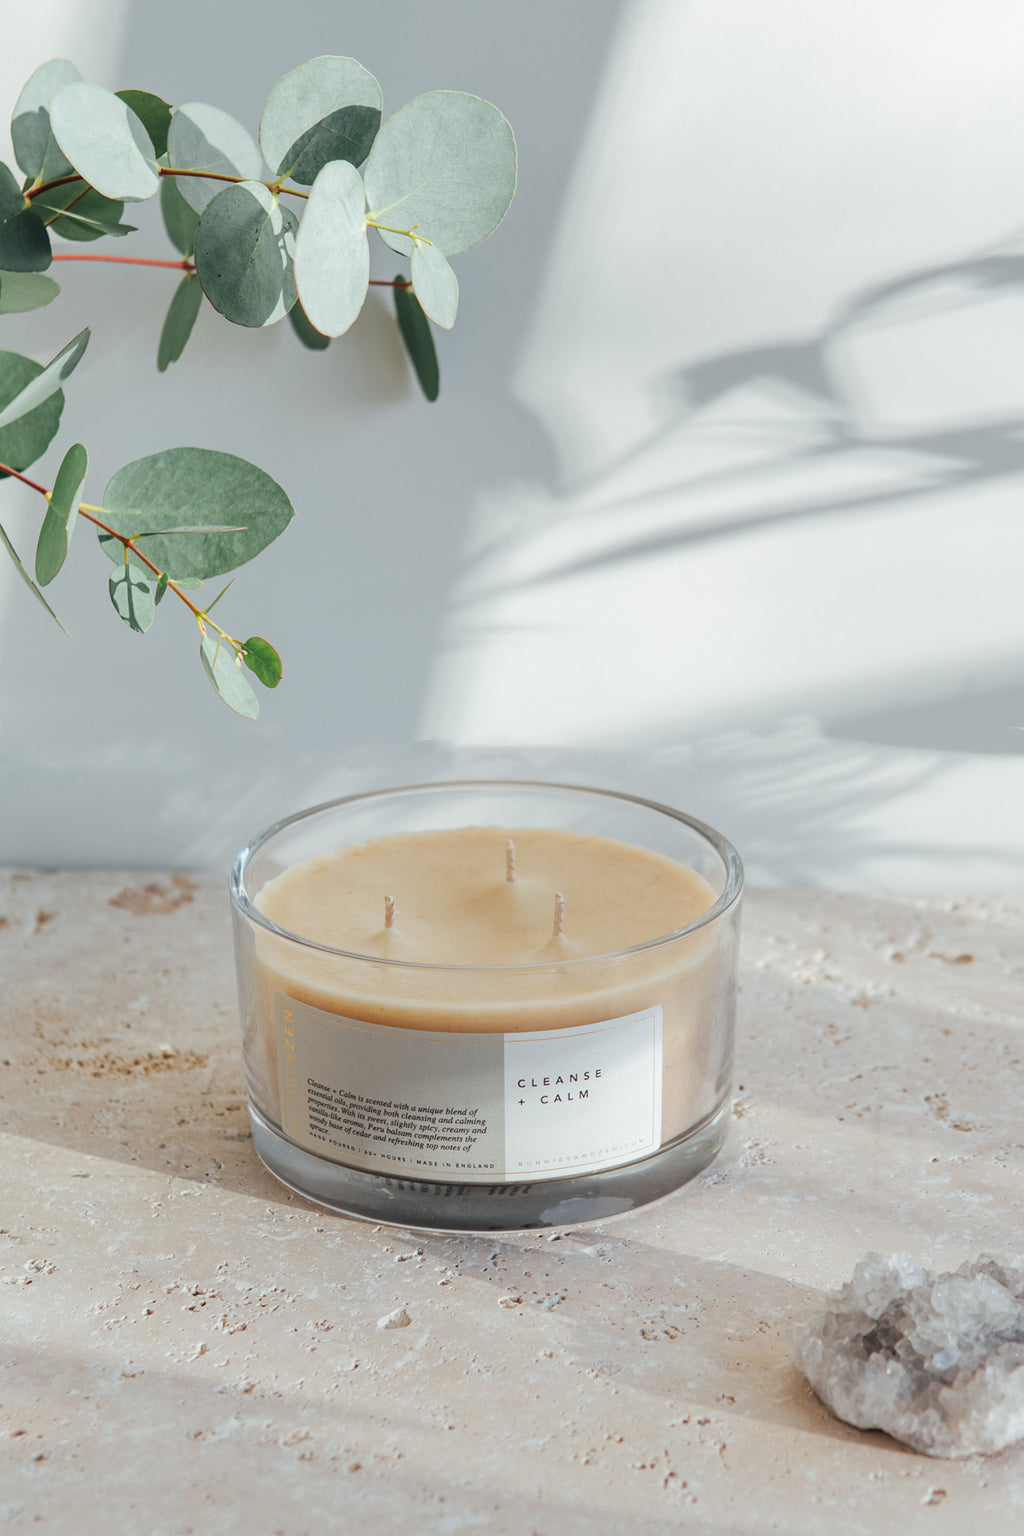 Cleanse + Calm | Three-Wick Candle